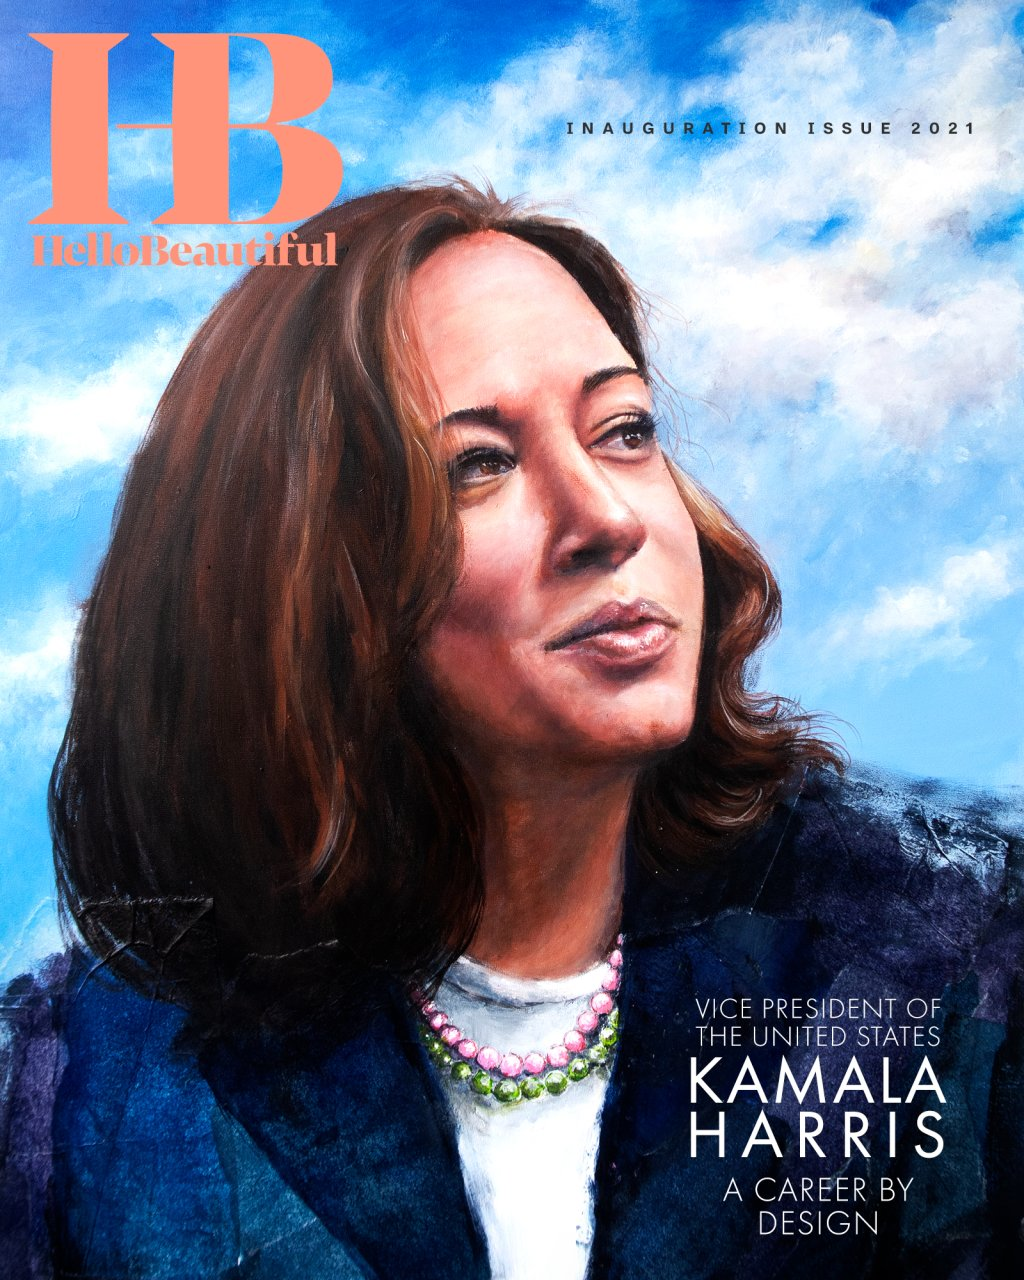 HelloBeautiful Inauguration Issue 2021 - COVER